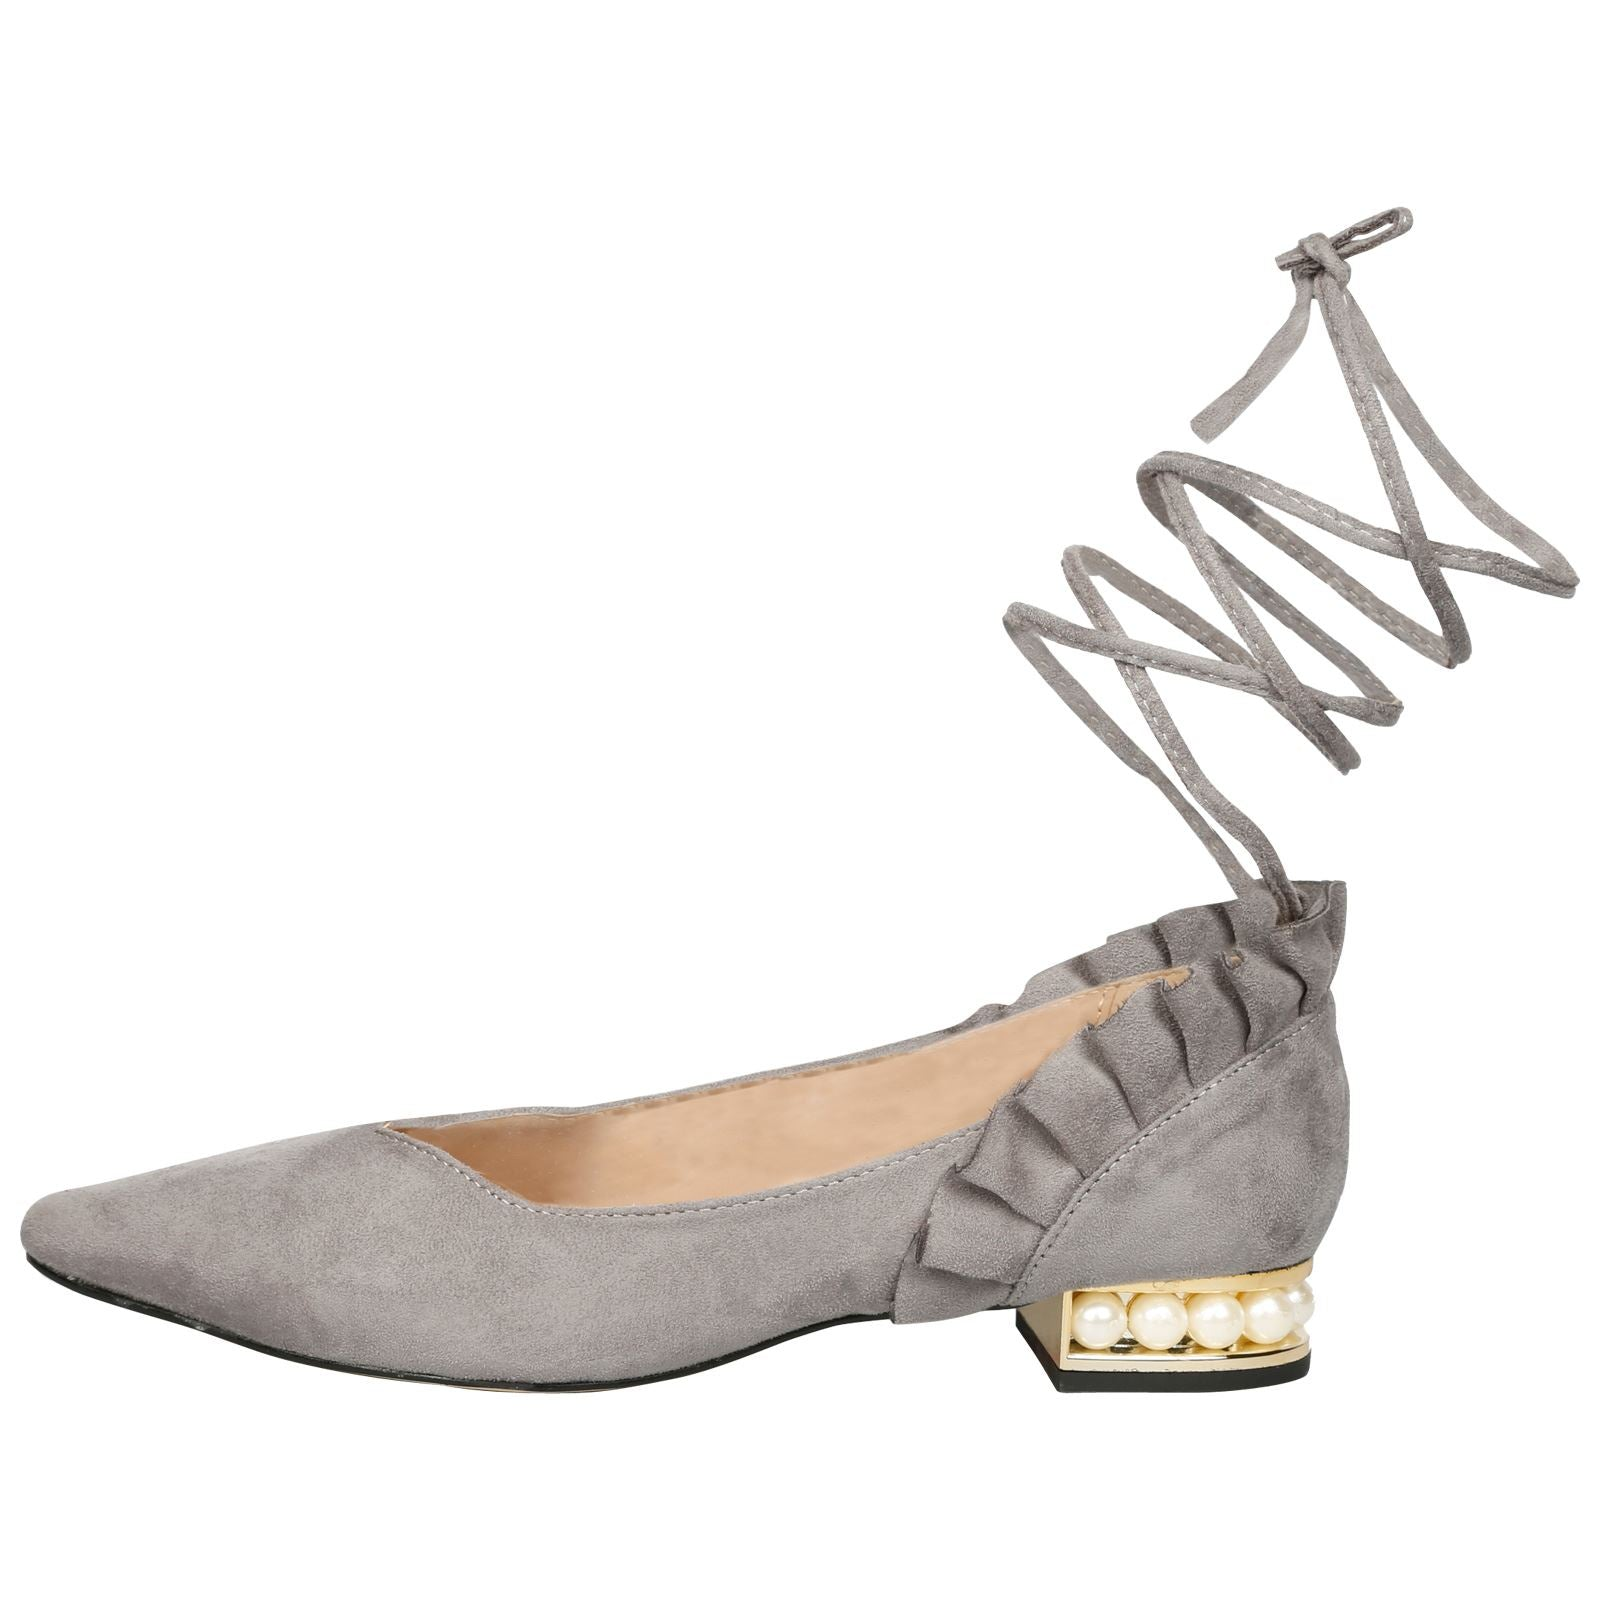 Jaelynn Lace Up Ballerina Flats in Grey